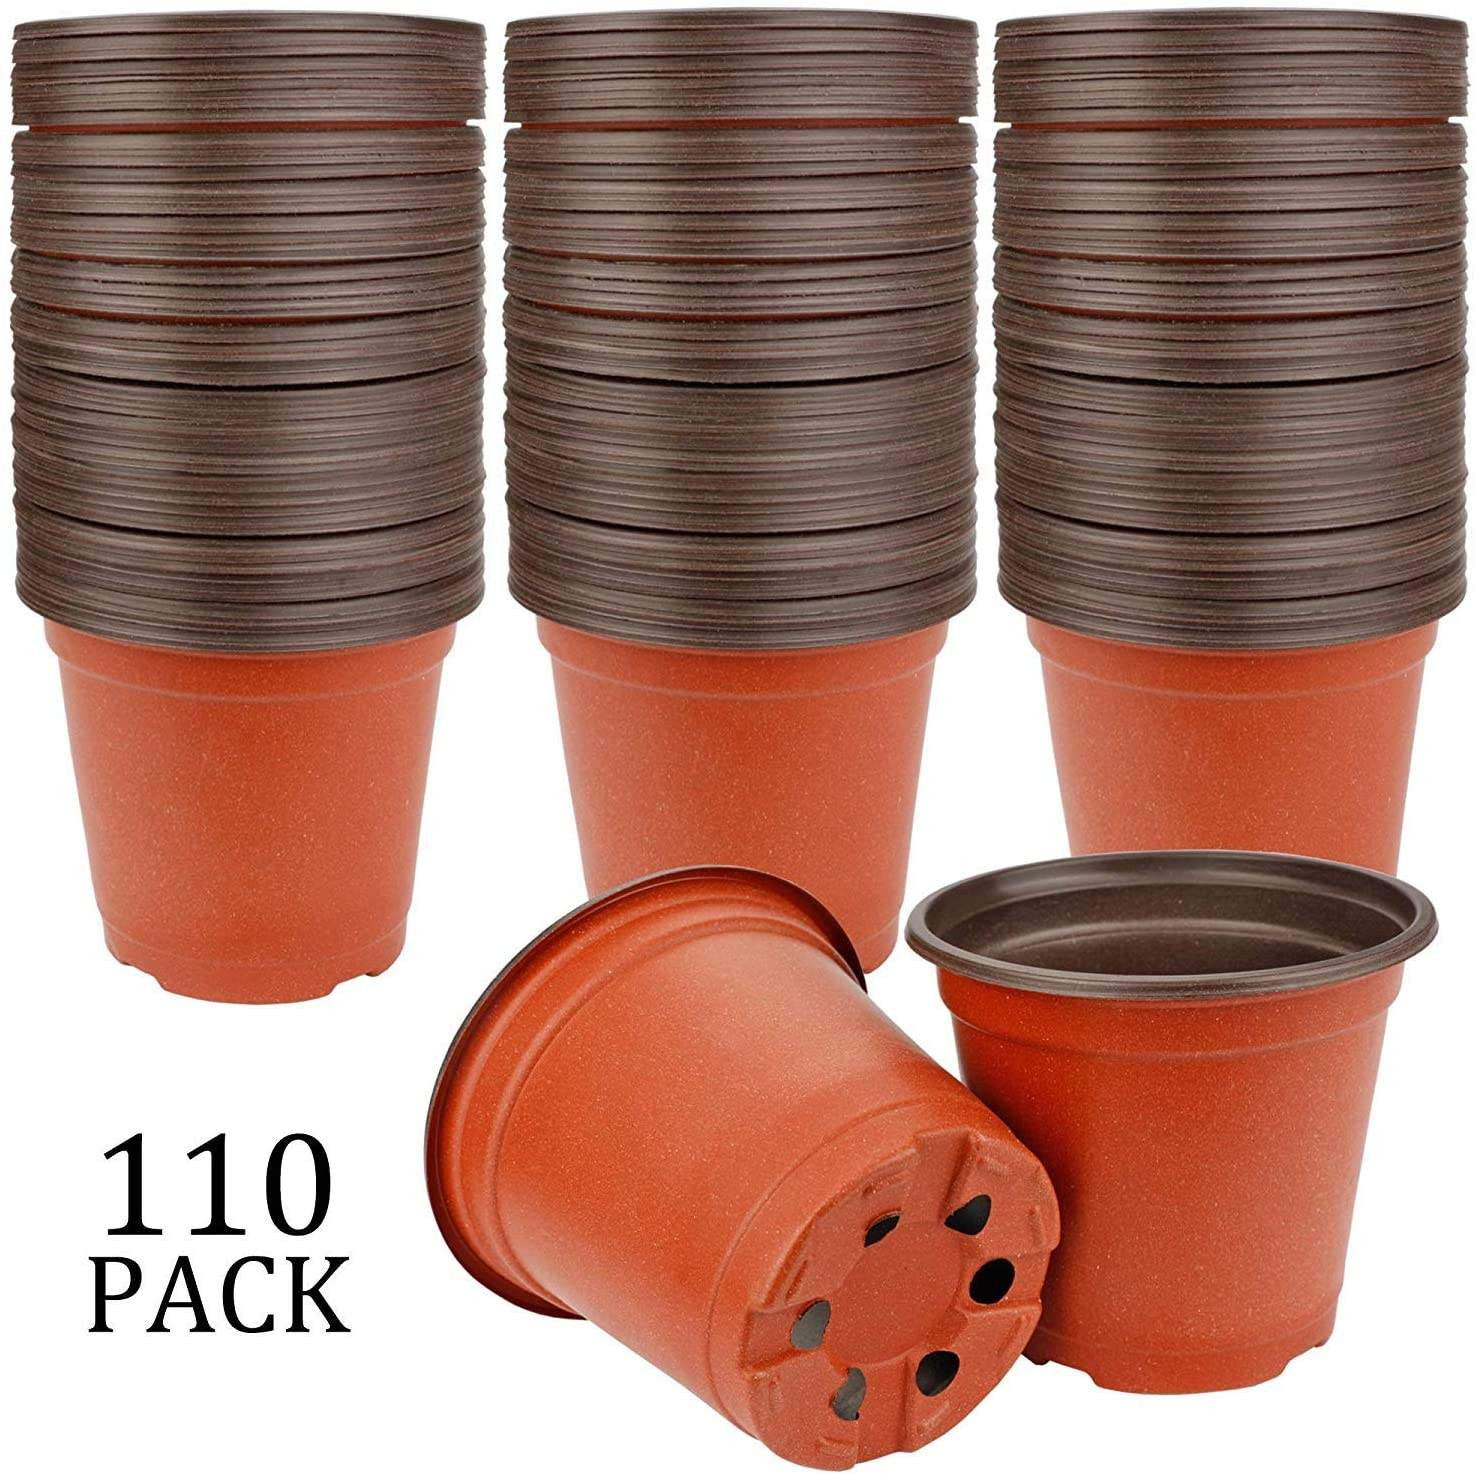 "Seed Starting Pots 4"" Plastic Plants Nursery Pot"